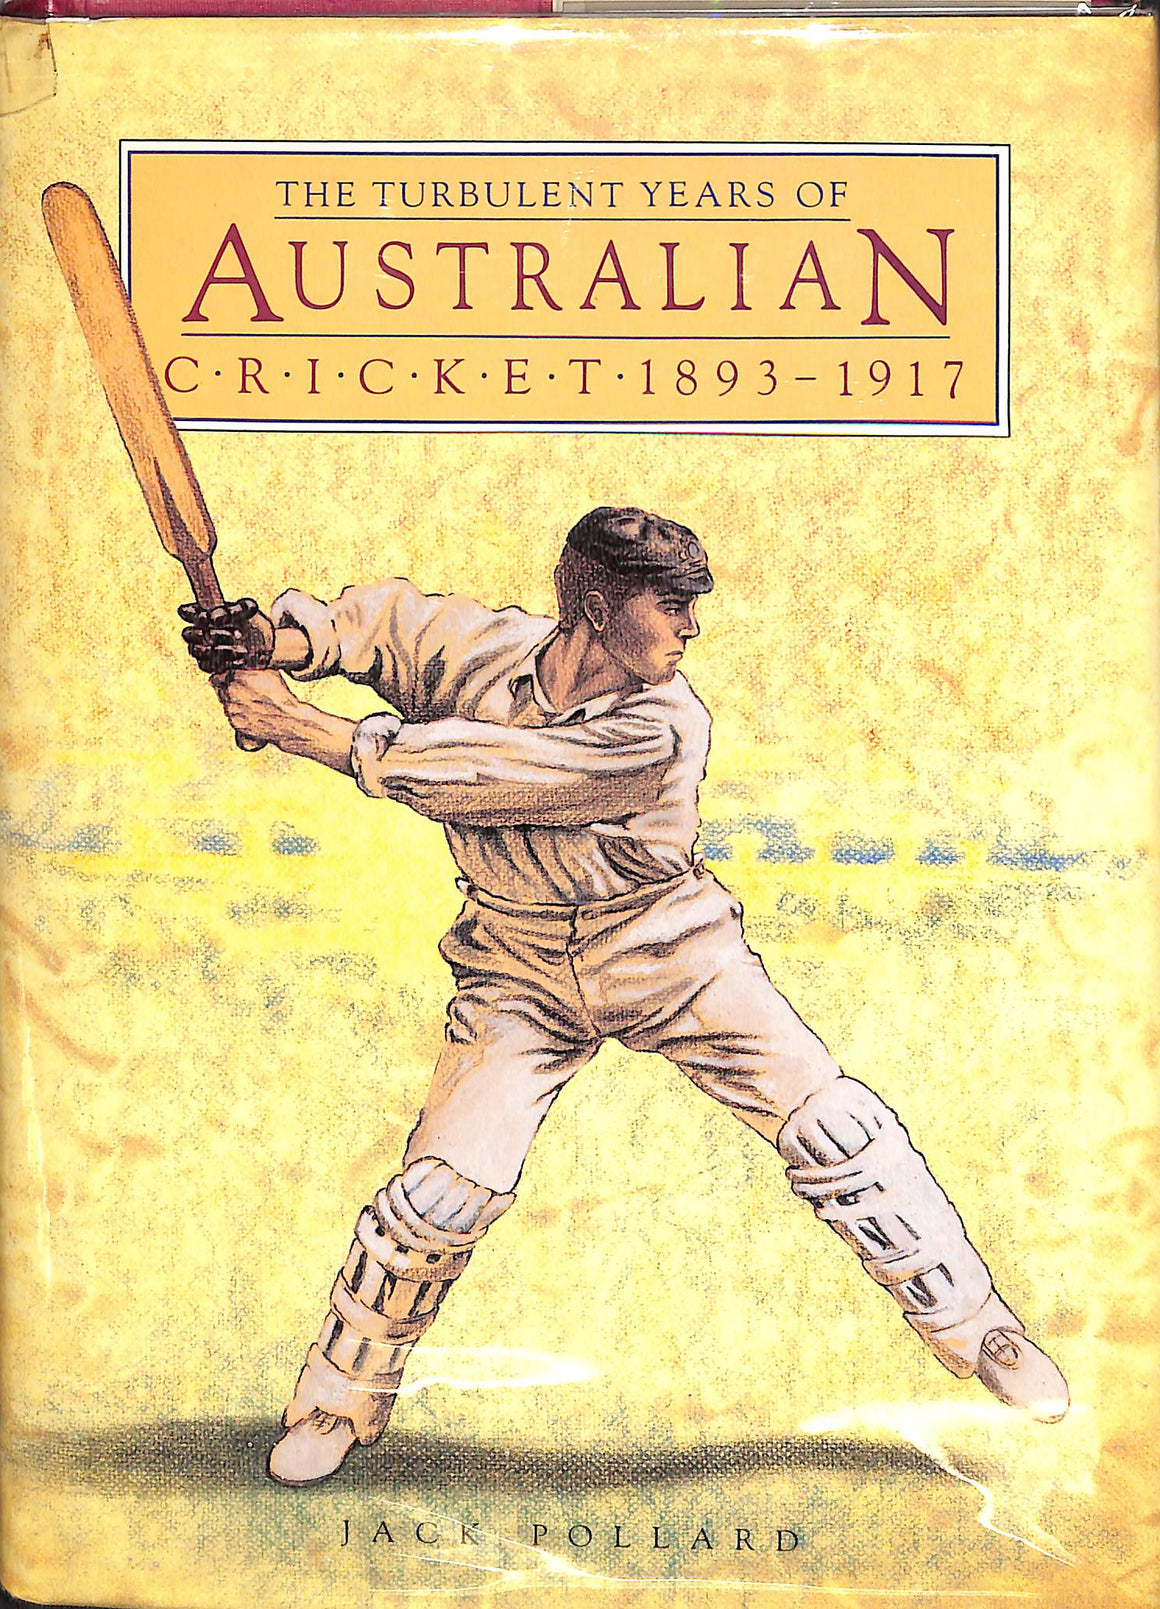 'The Turbulent Years of Australian Cricket: 1893-1917'